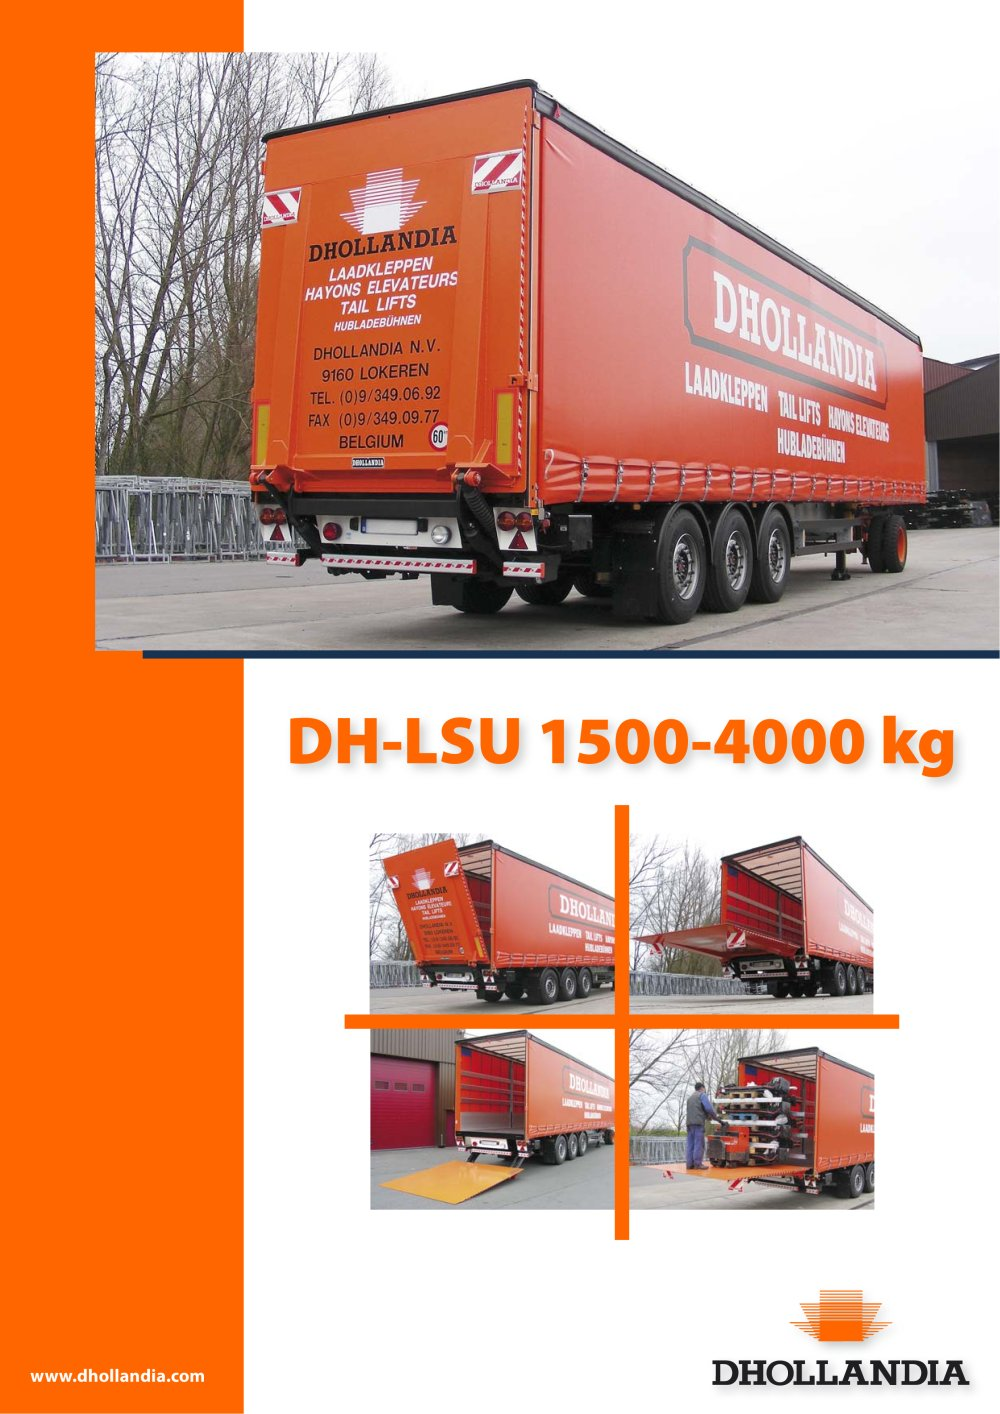 Dhollandia Tail Lift Wiring Diagram 35 Images Dh Cantilever Lifts Lm41 118431 1b Pdf Catalogue Technical